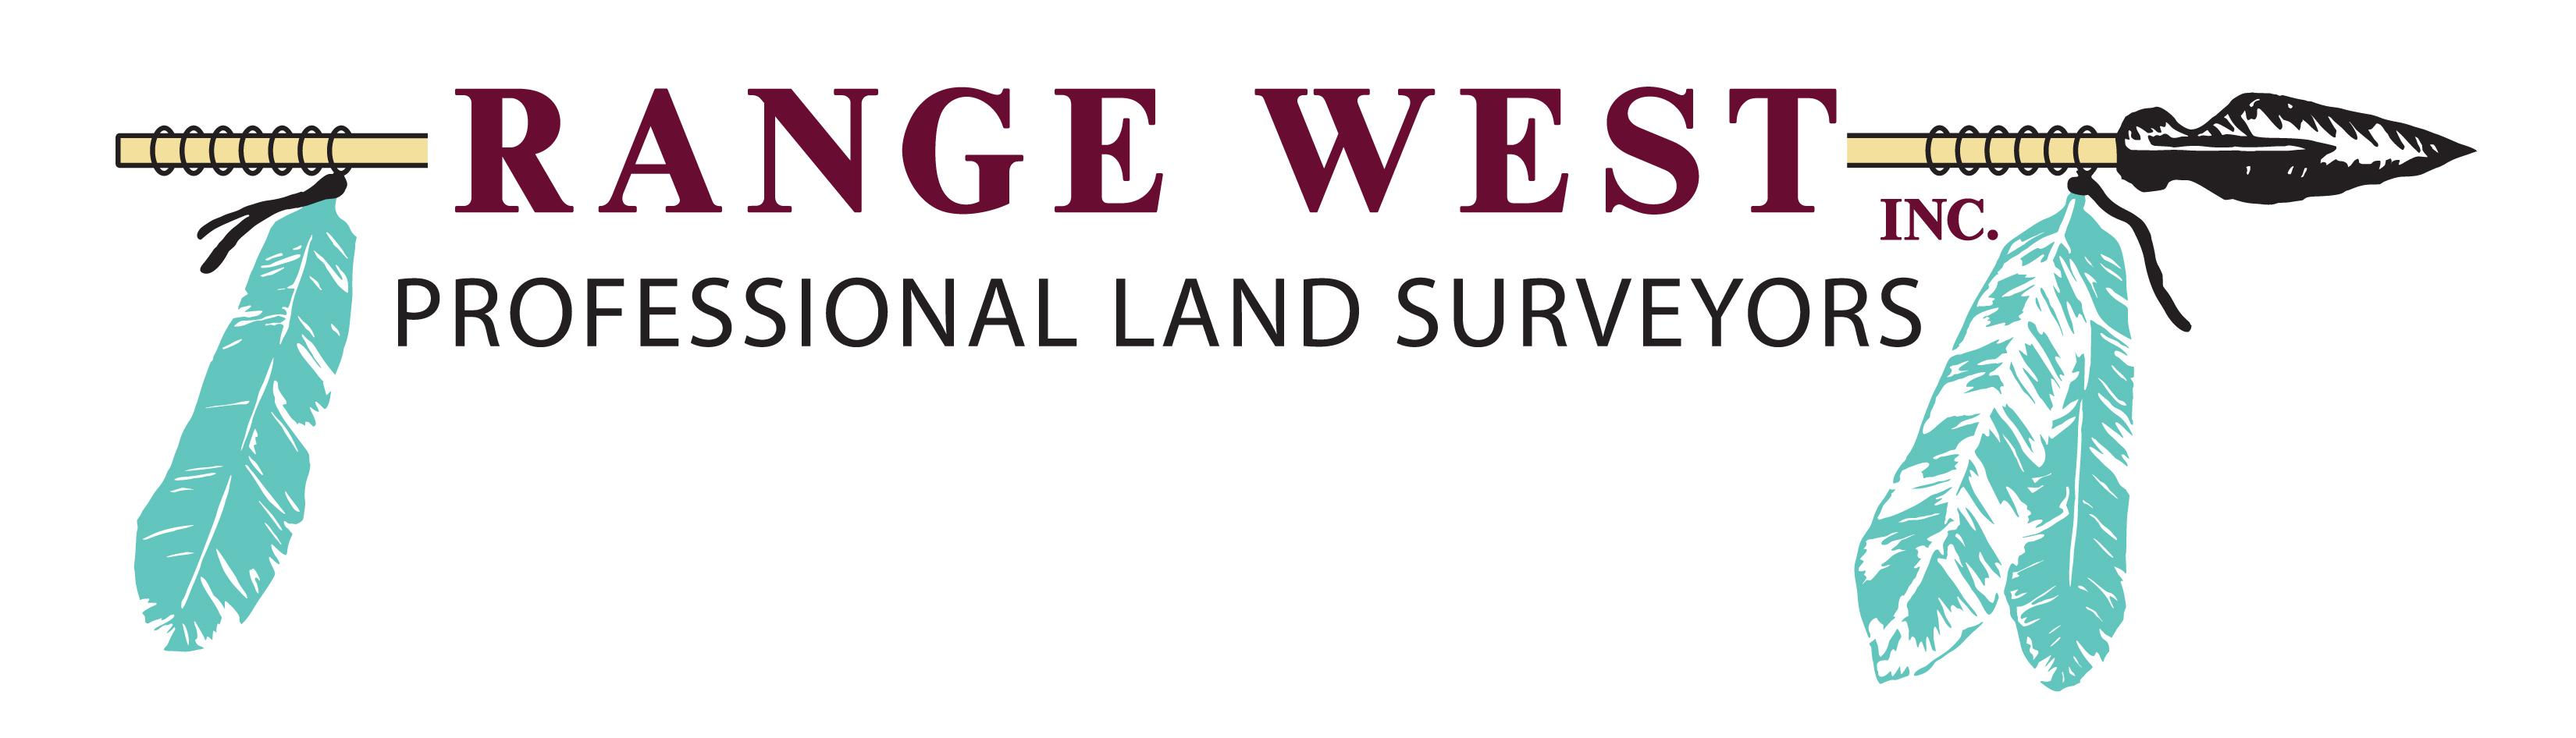 Range West, Inc.